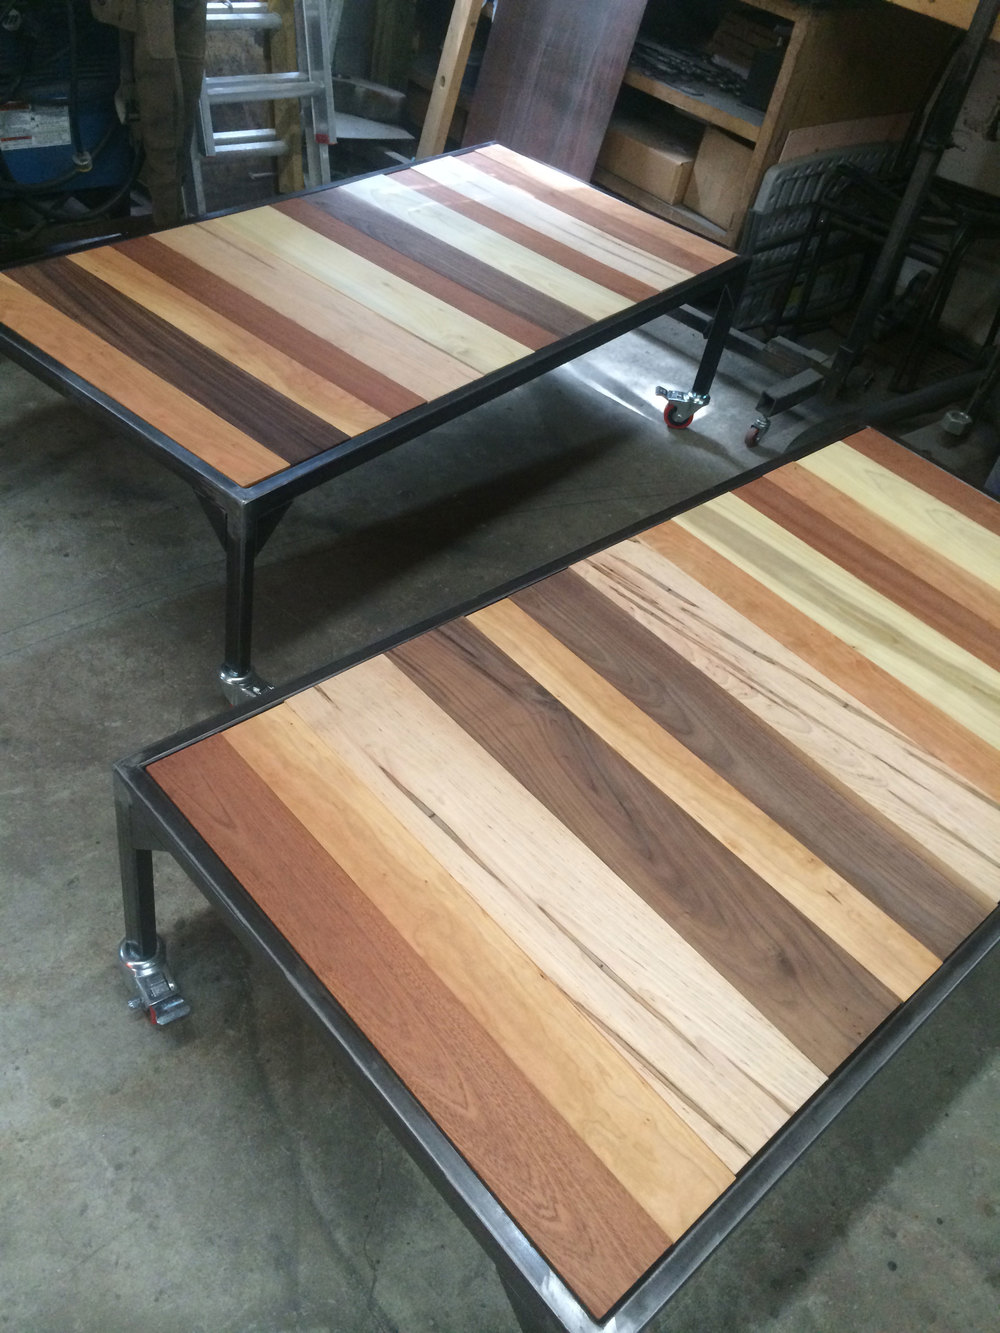 Steel and wood display tables